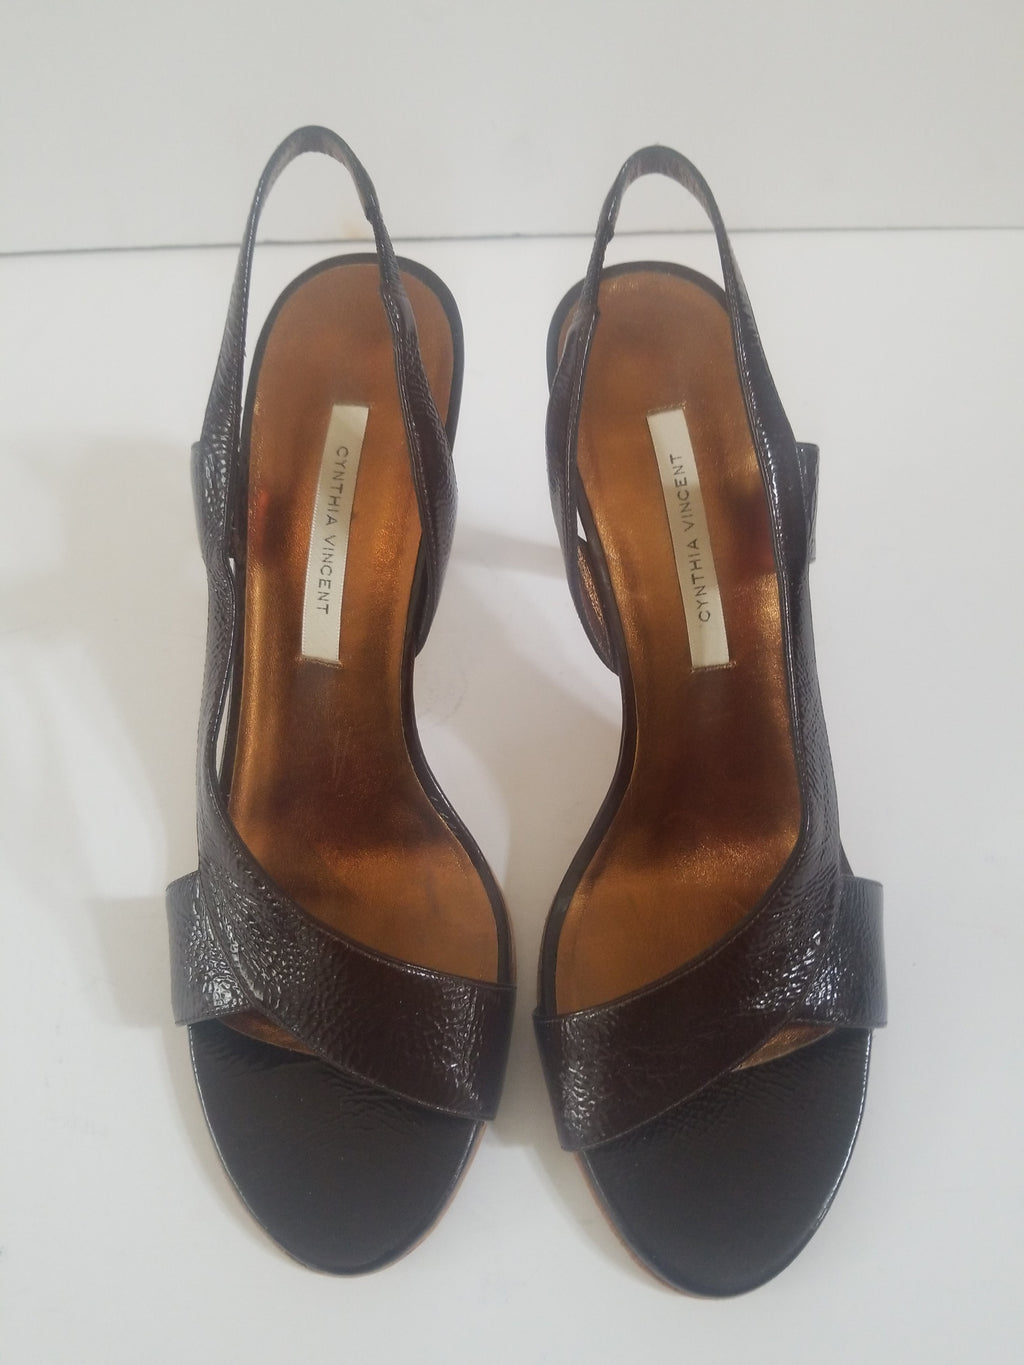 Cynthia Vincent women's sandals brown leather slingback size 9 M